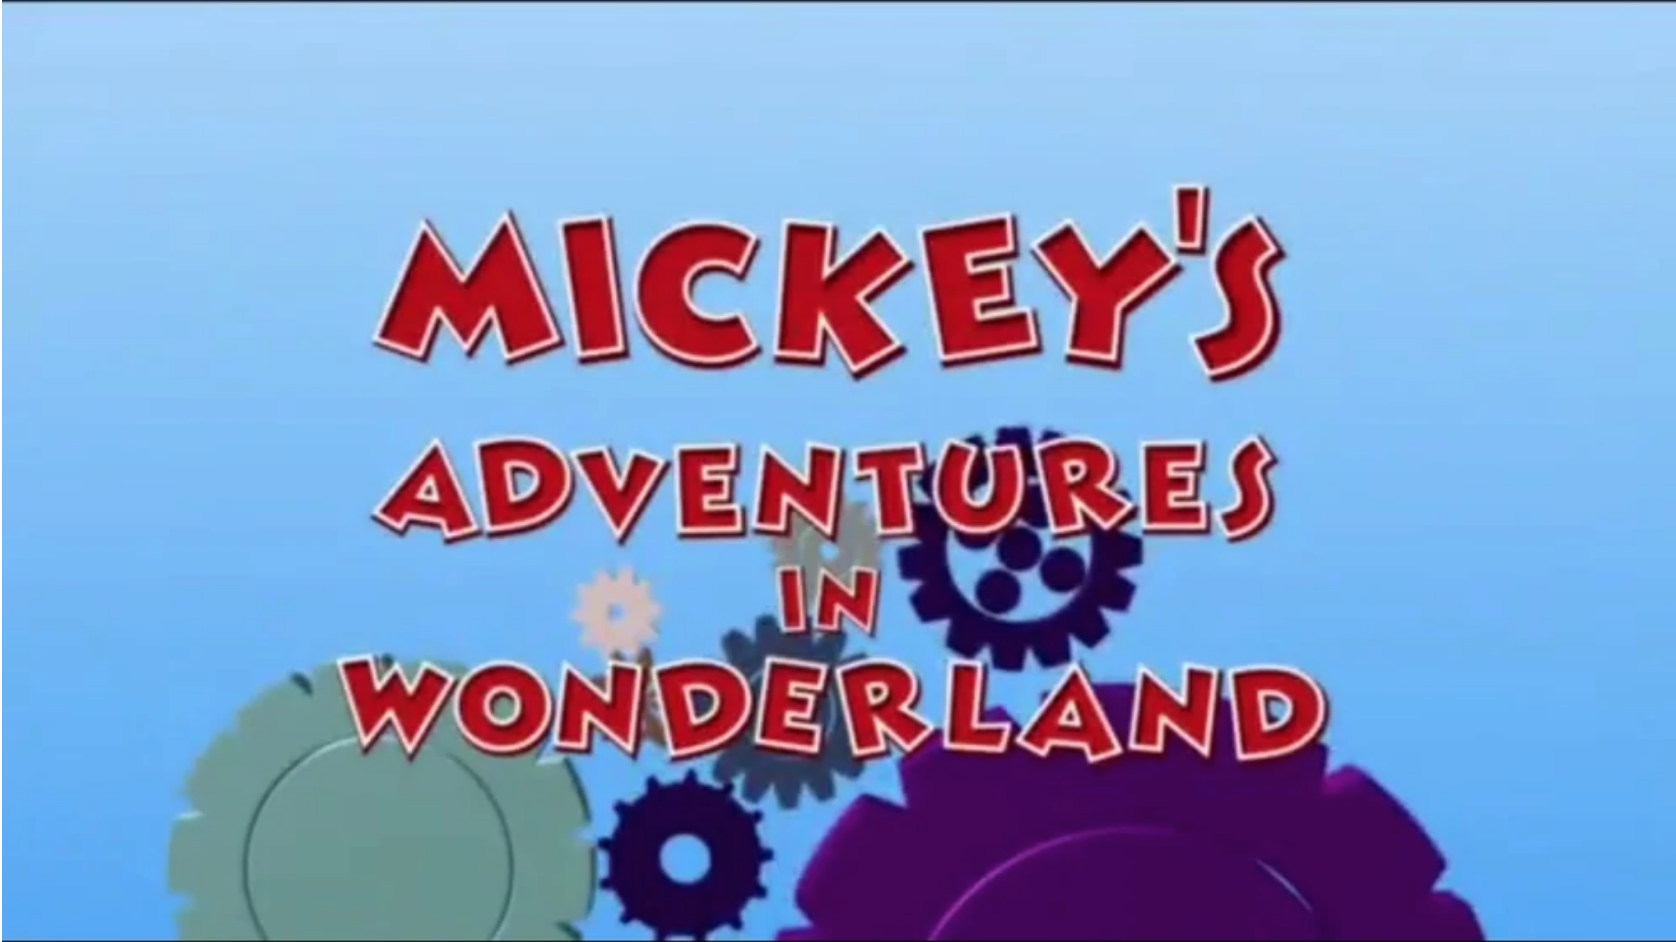 Mickey's Adventures in Wonderland